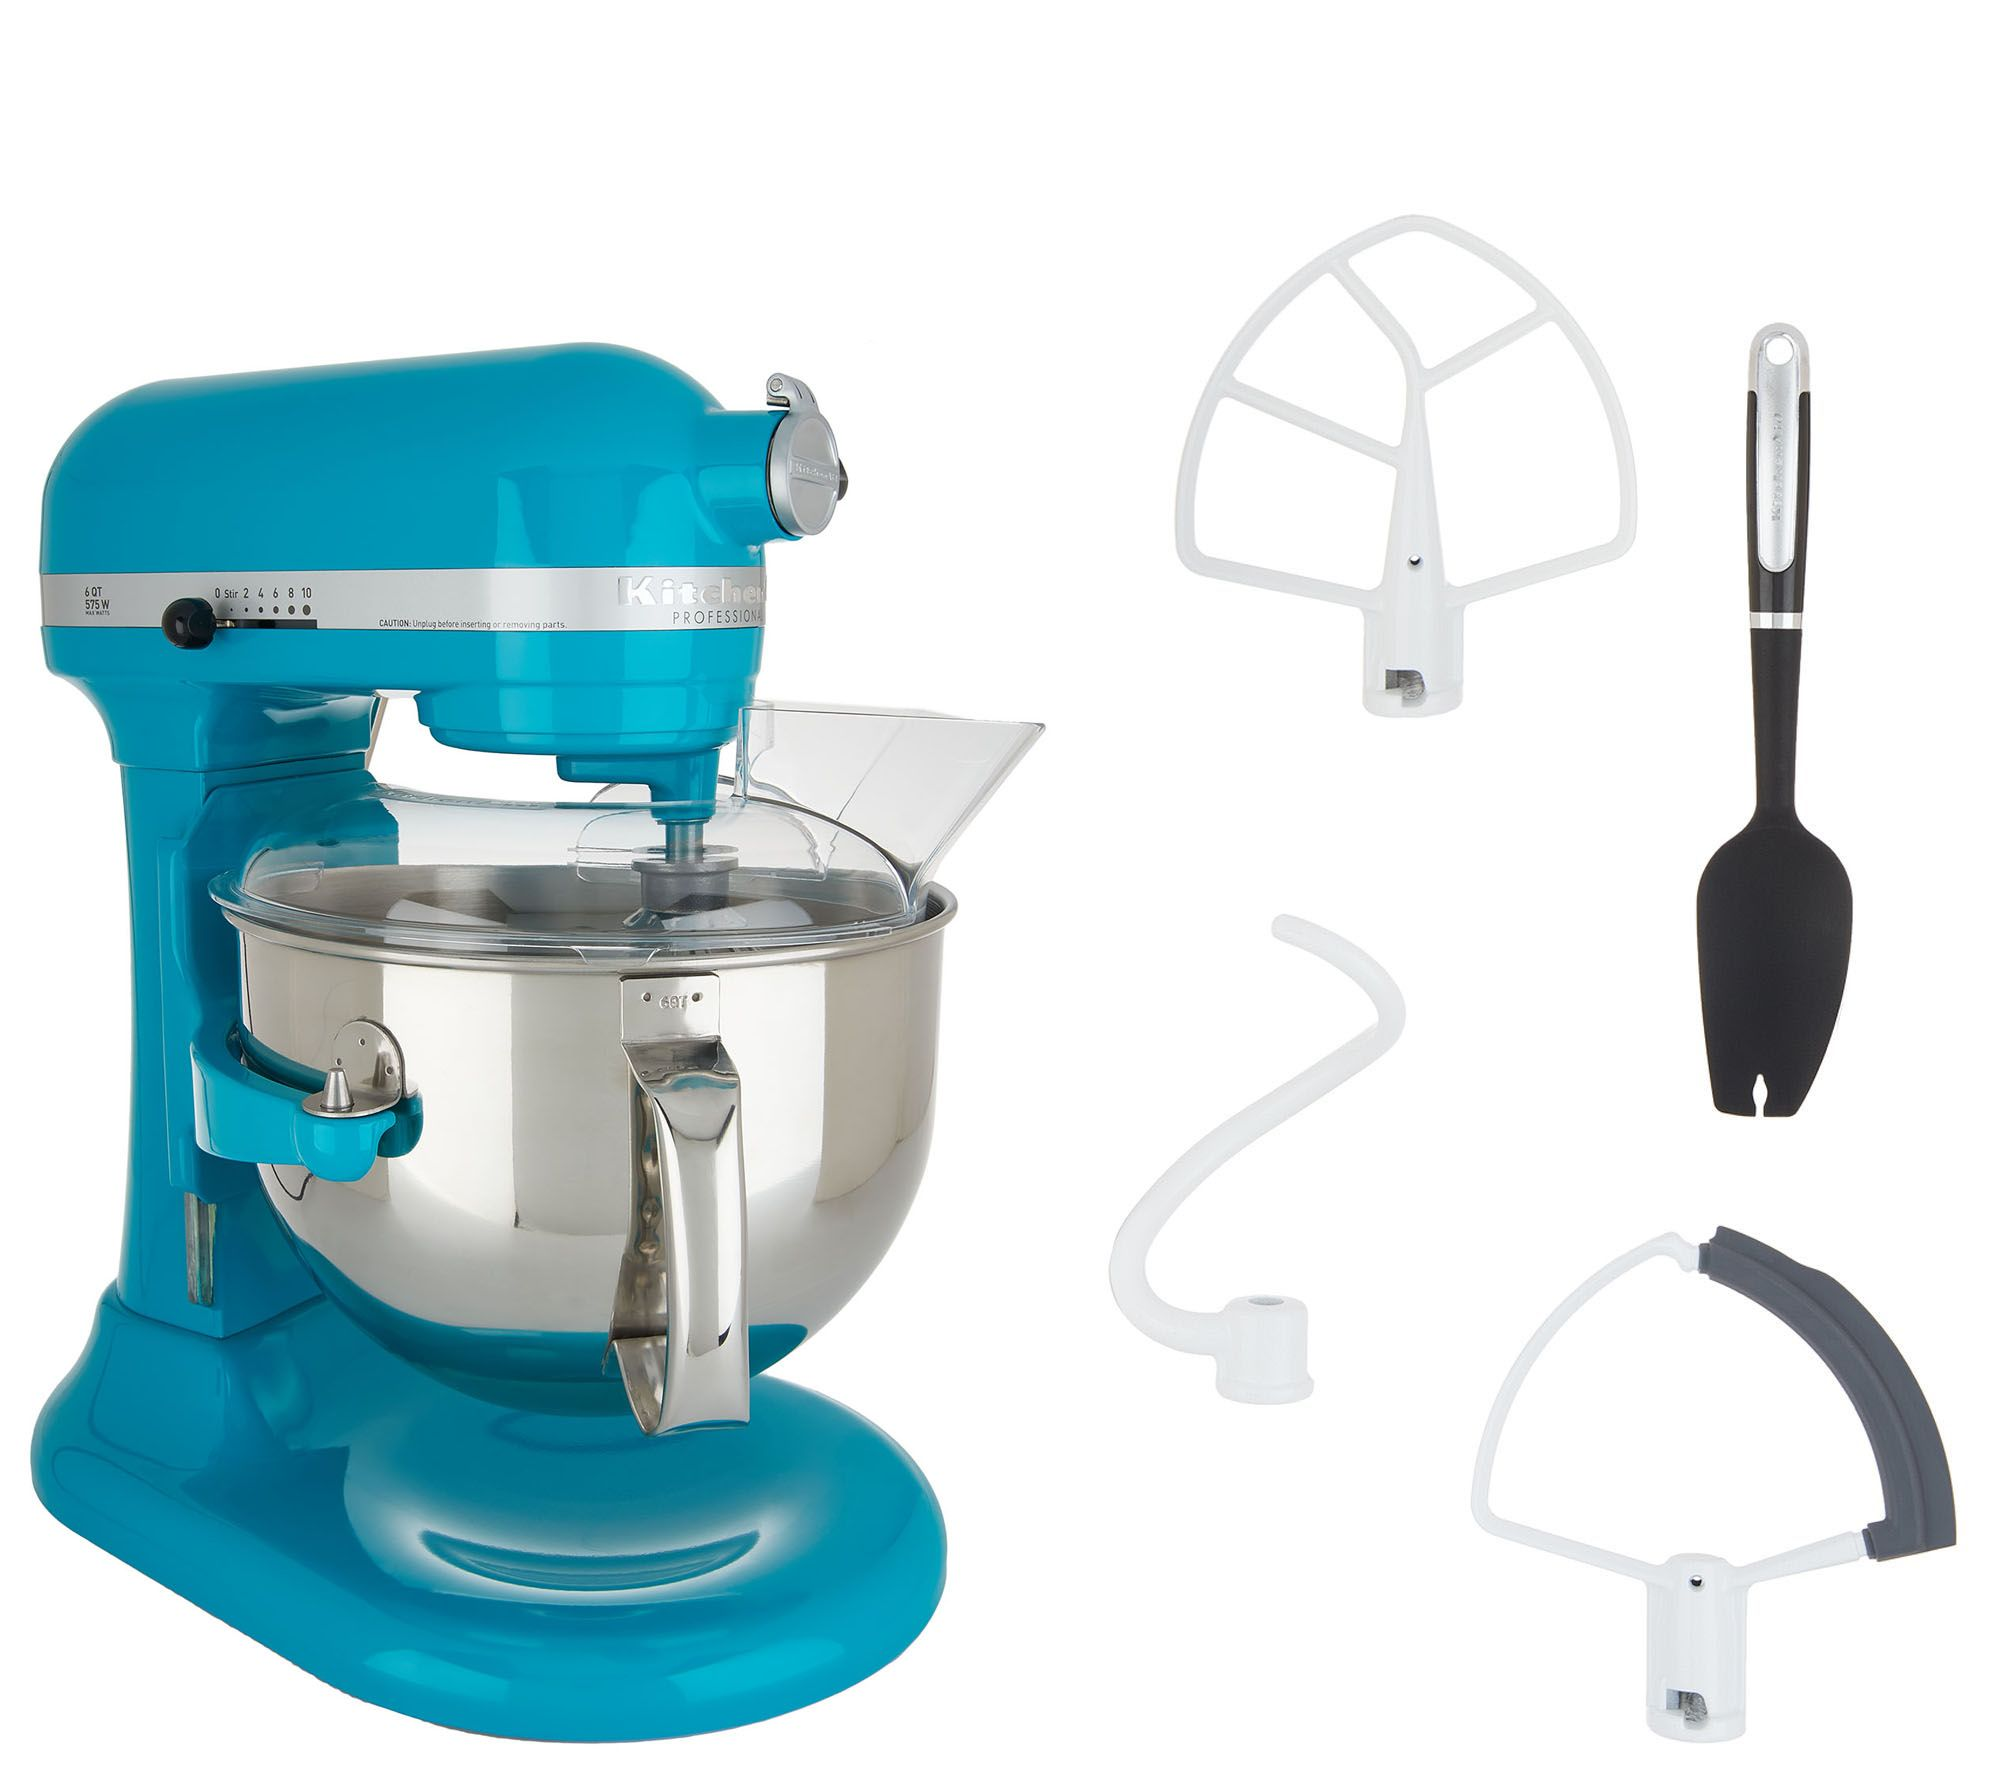 kitchenaid pro 600 6 qt bowl lift stand mixer w flex edge beater rh qvc com